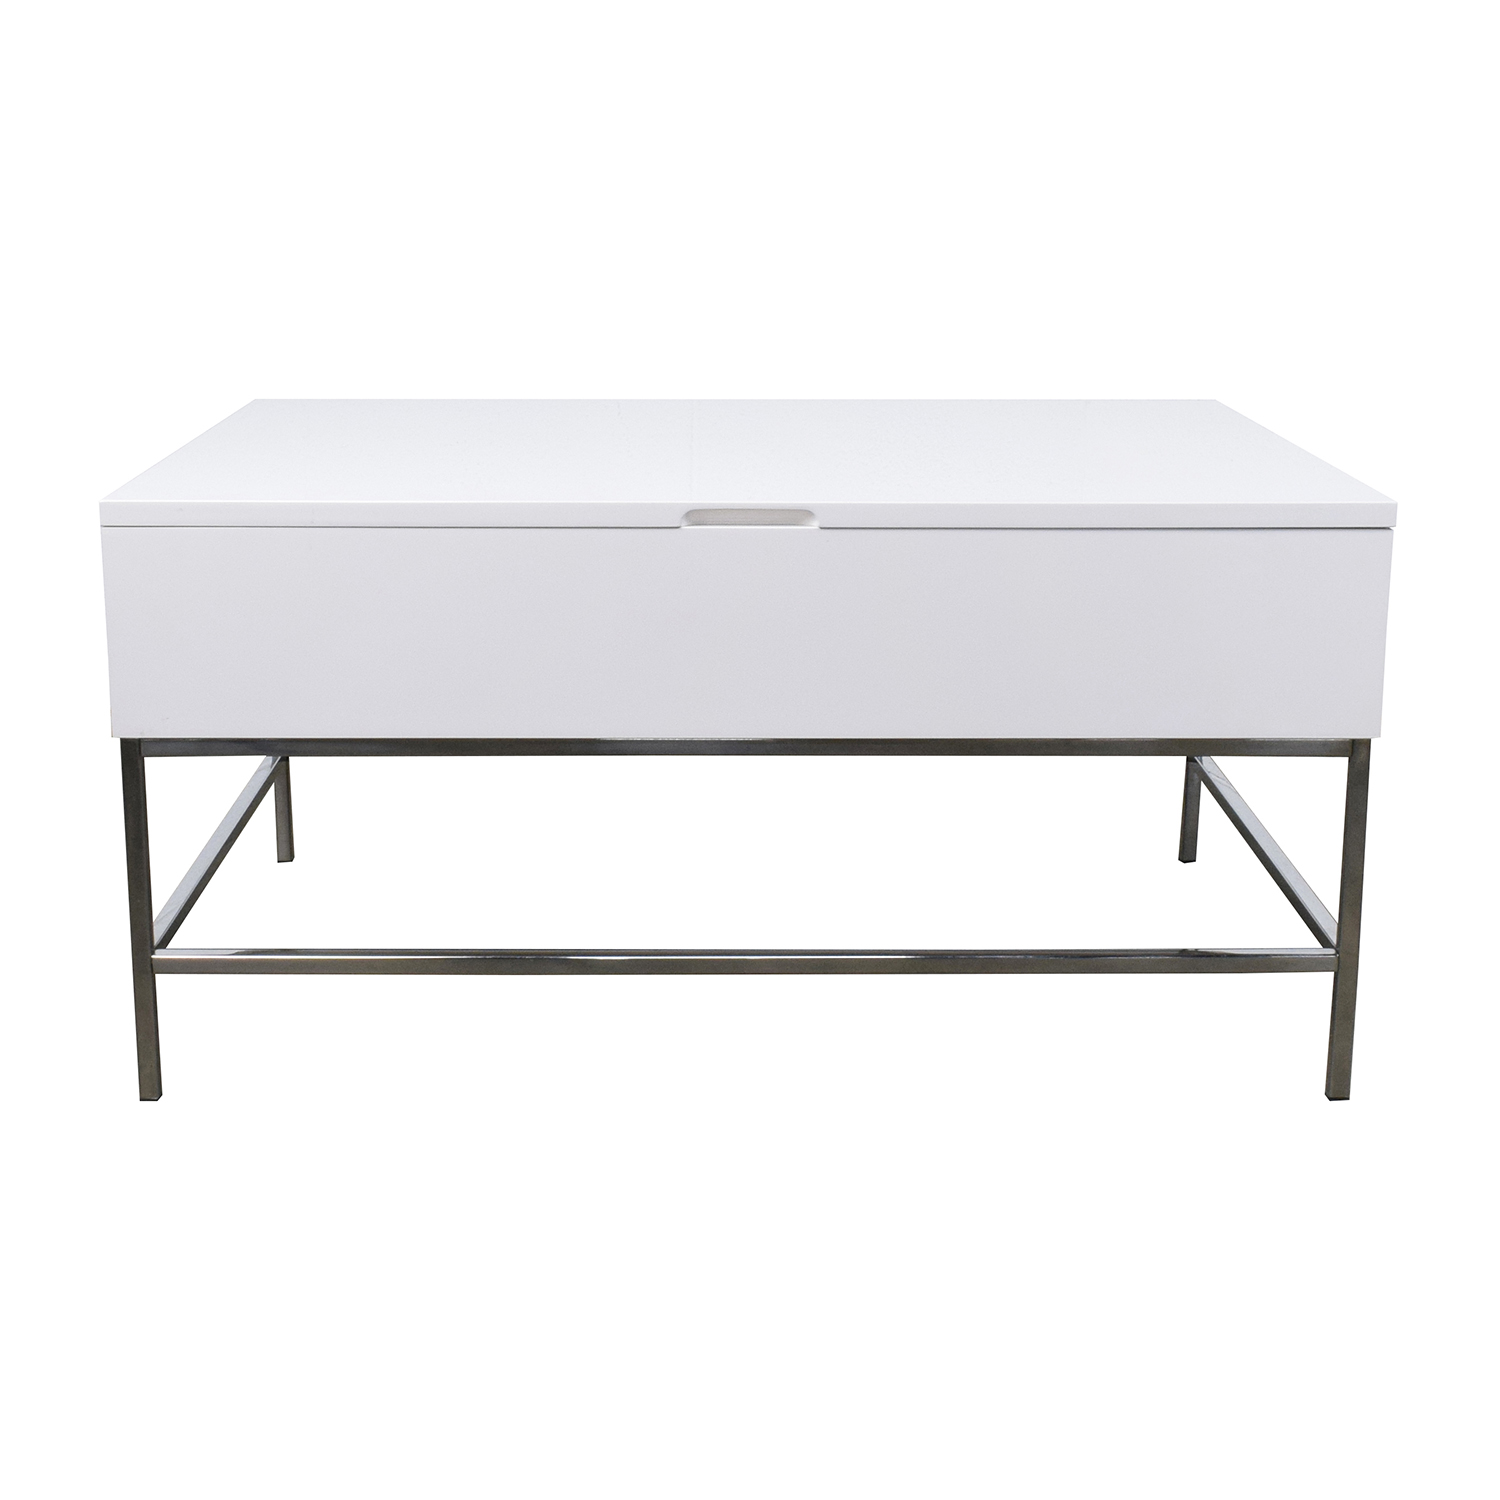 Superieur West Elm Storage Table West Elm White Lacquer Wood Coffee Table Dimensions  ...